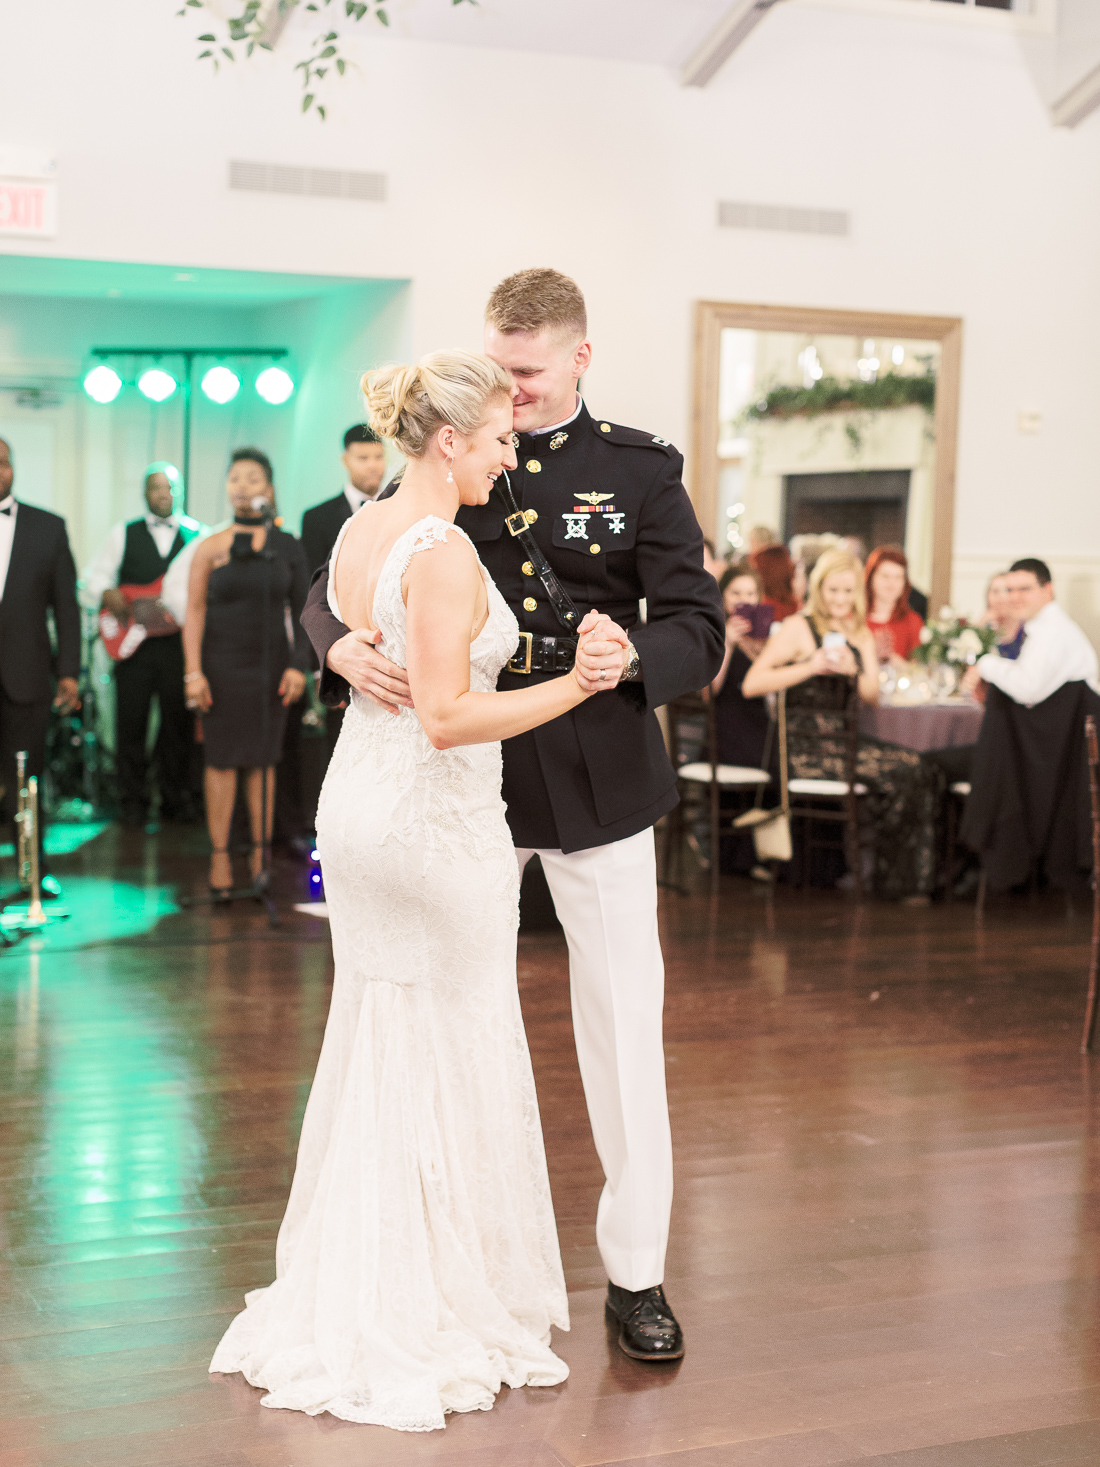 md-wedding-photographer-michelle-whitley-first-look